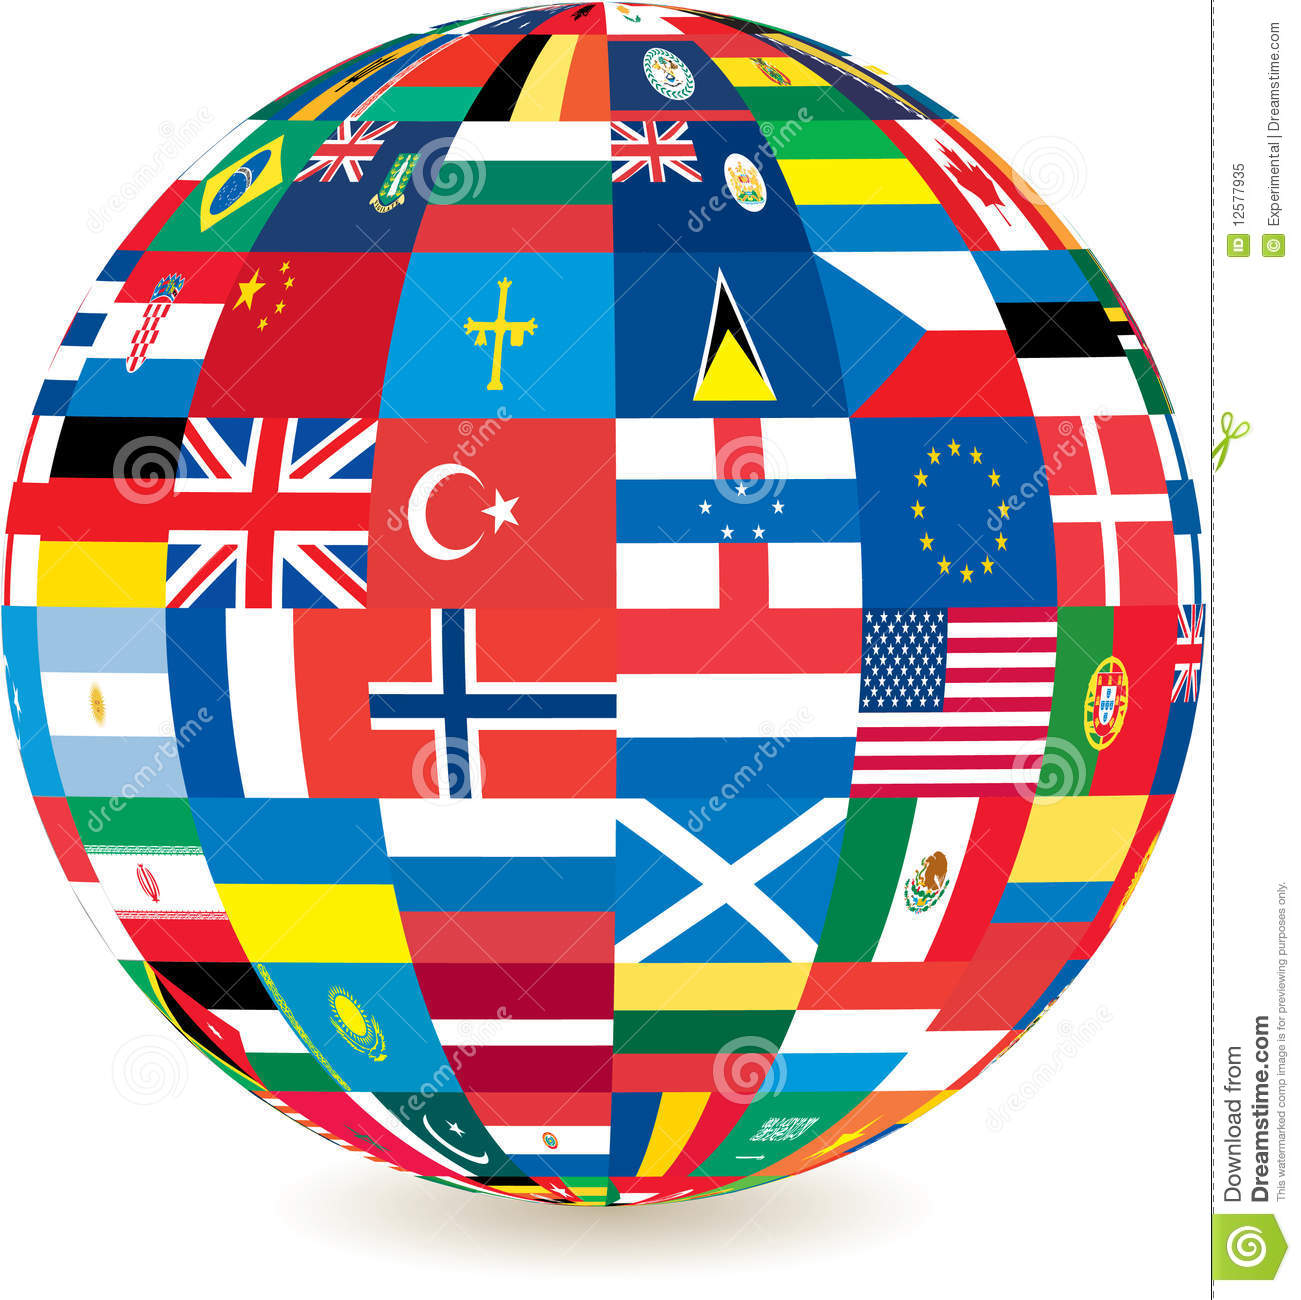 Globe des indicateurs de pays du monde photo libre de droits image 12577935 - Globe maison du monde ...